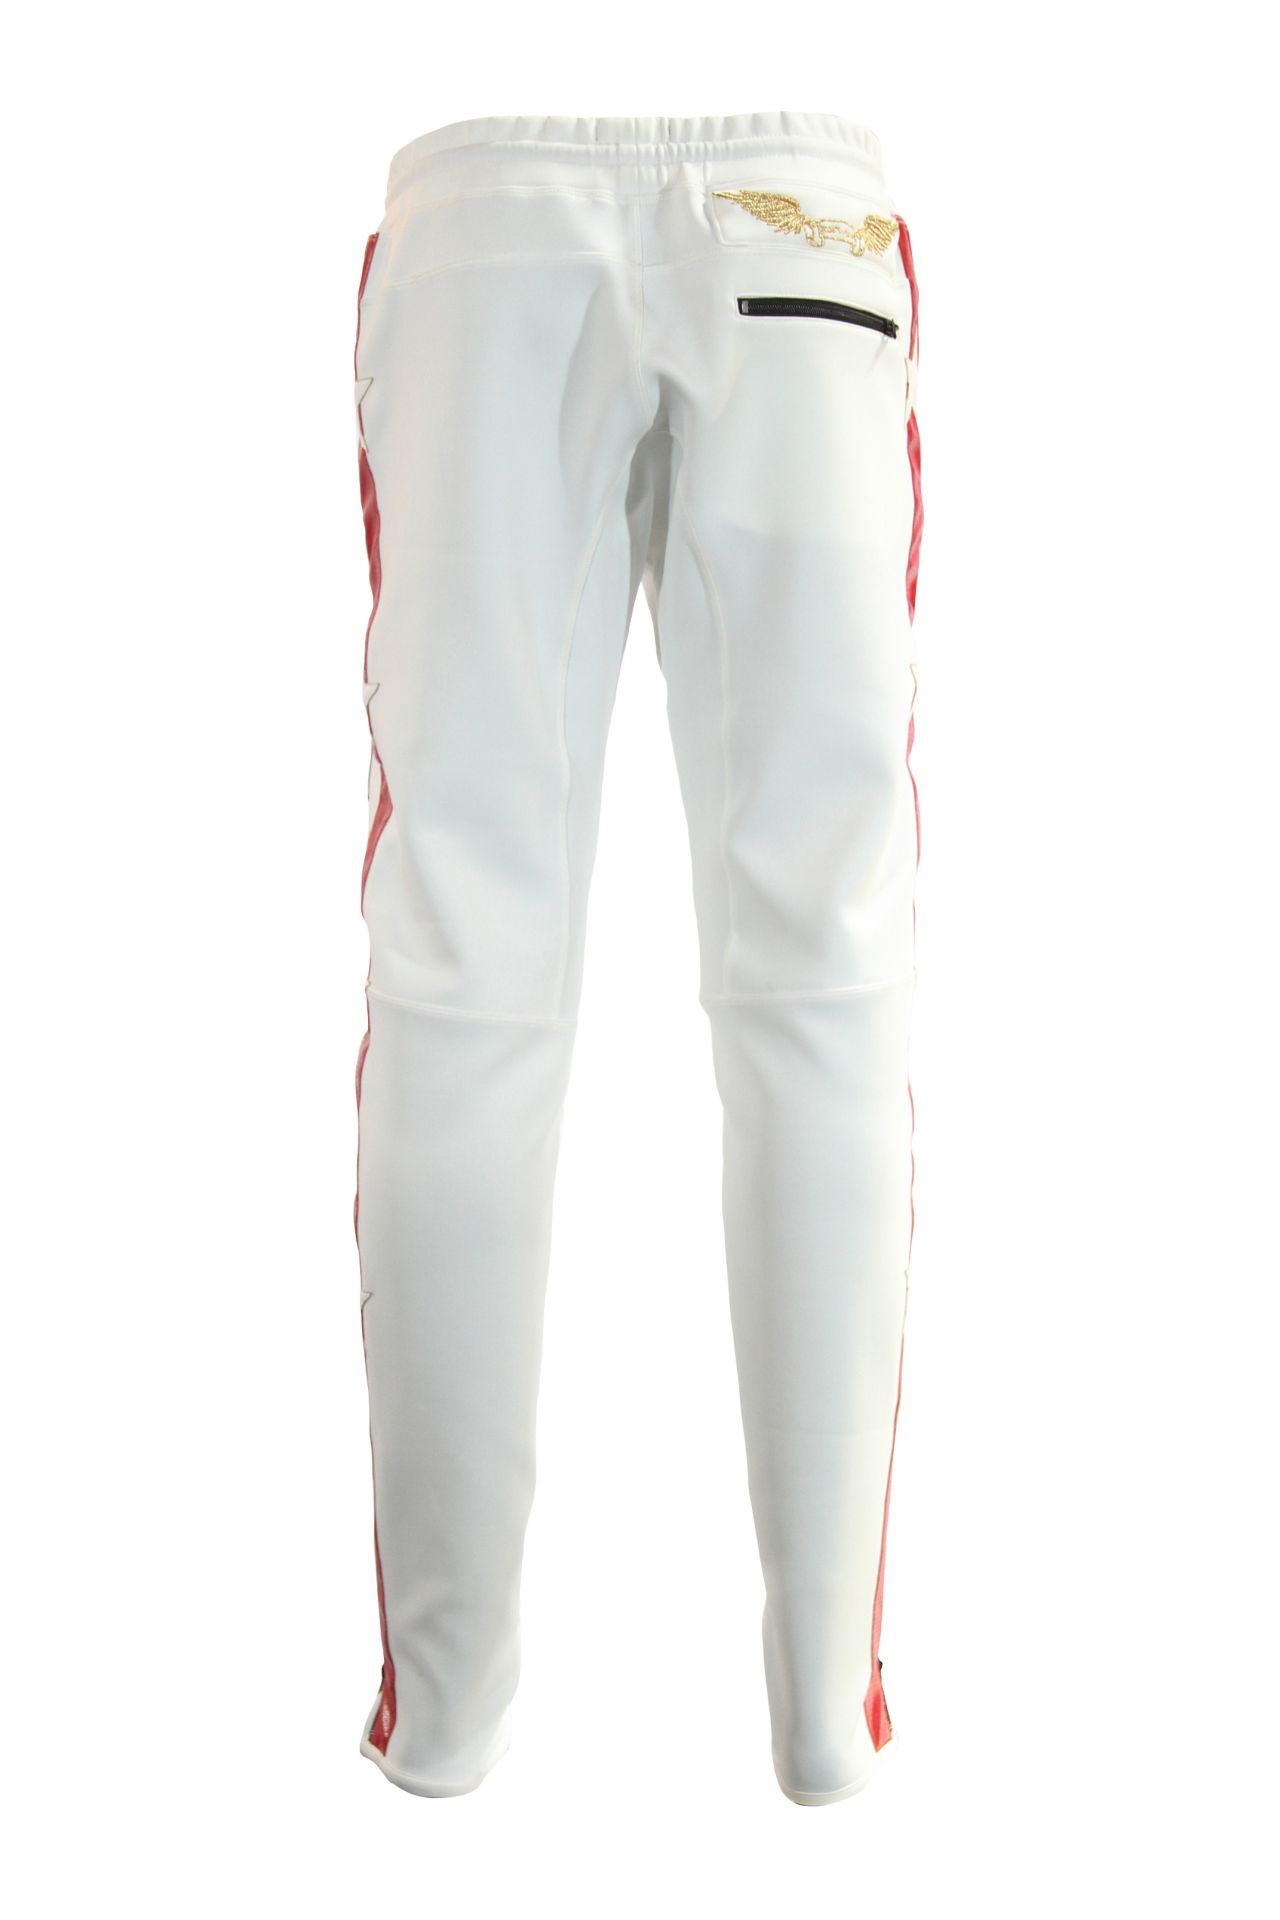 WHITE JOGGER WITH RED STRIPE AND PATCHWORK